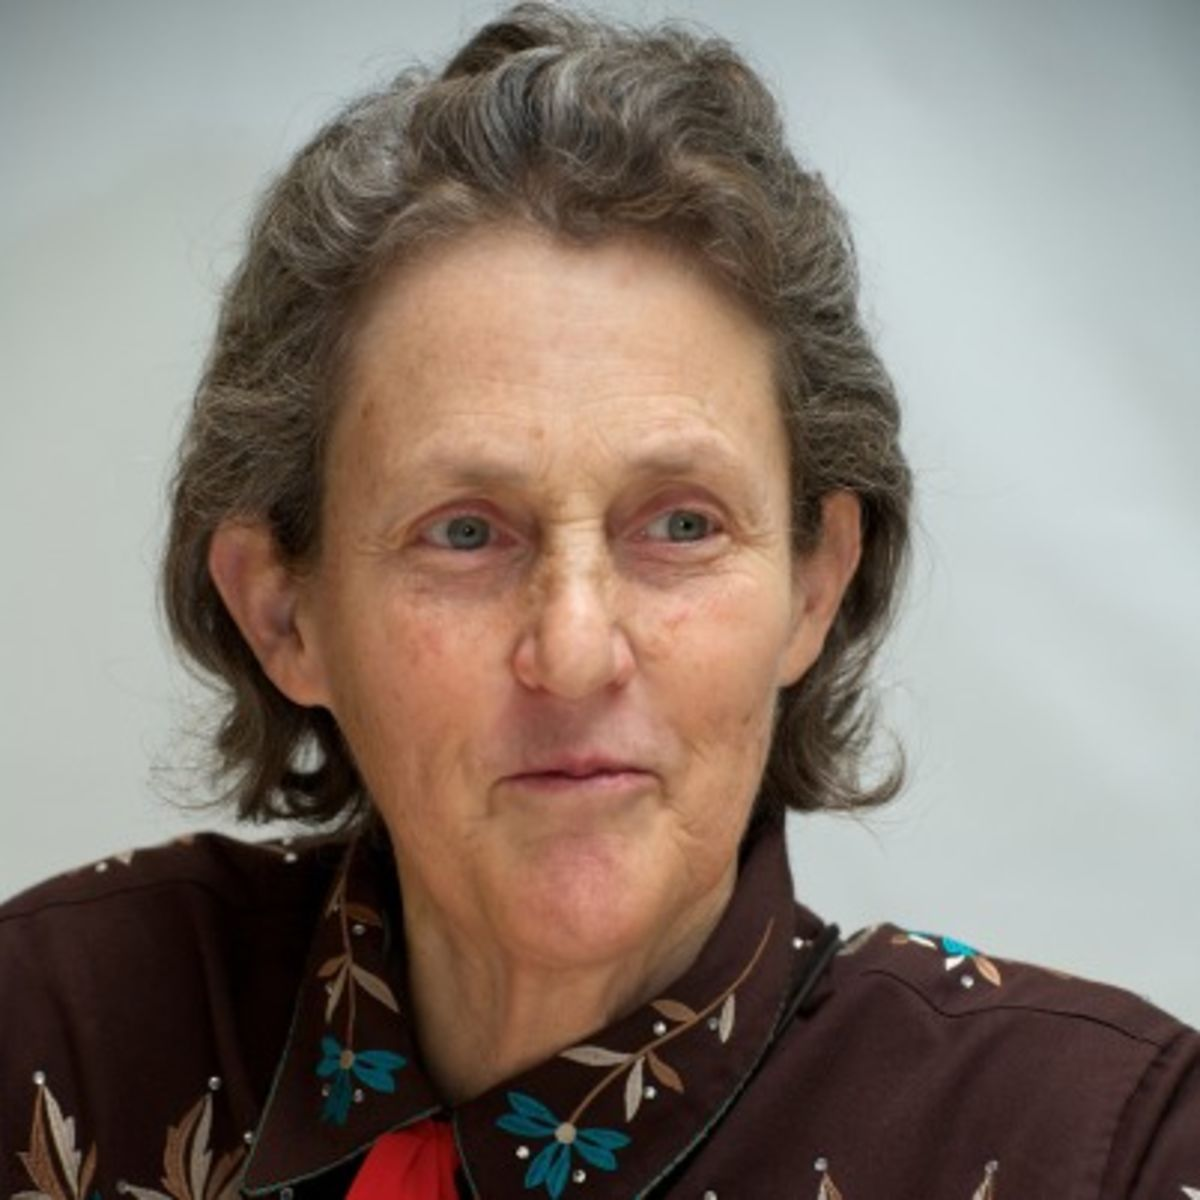 an analysis of a young womans struggle with autism in temple grandin by mike jackson